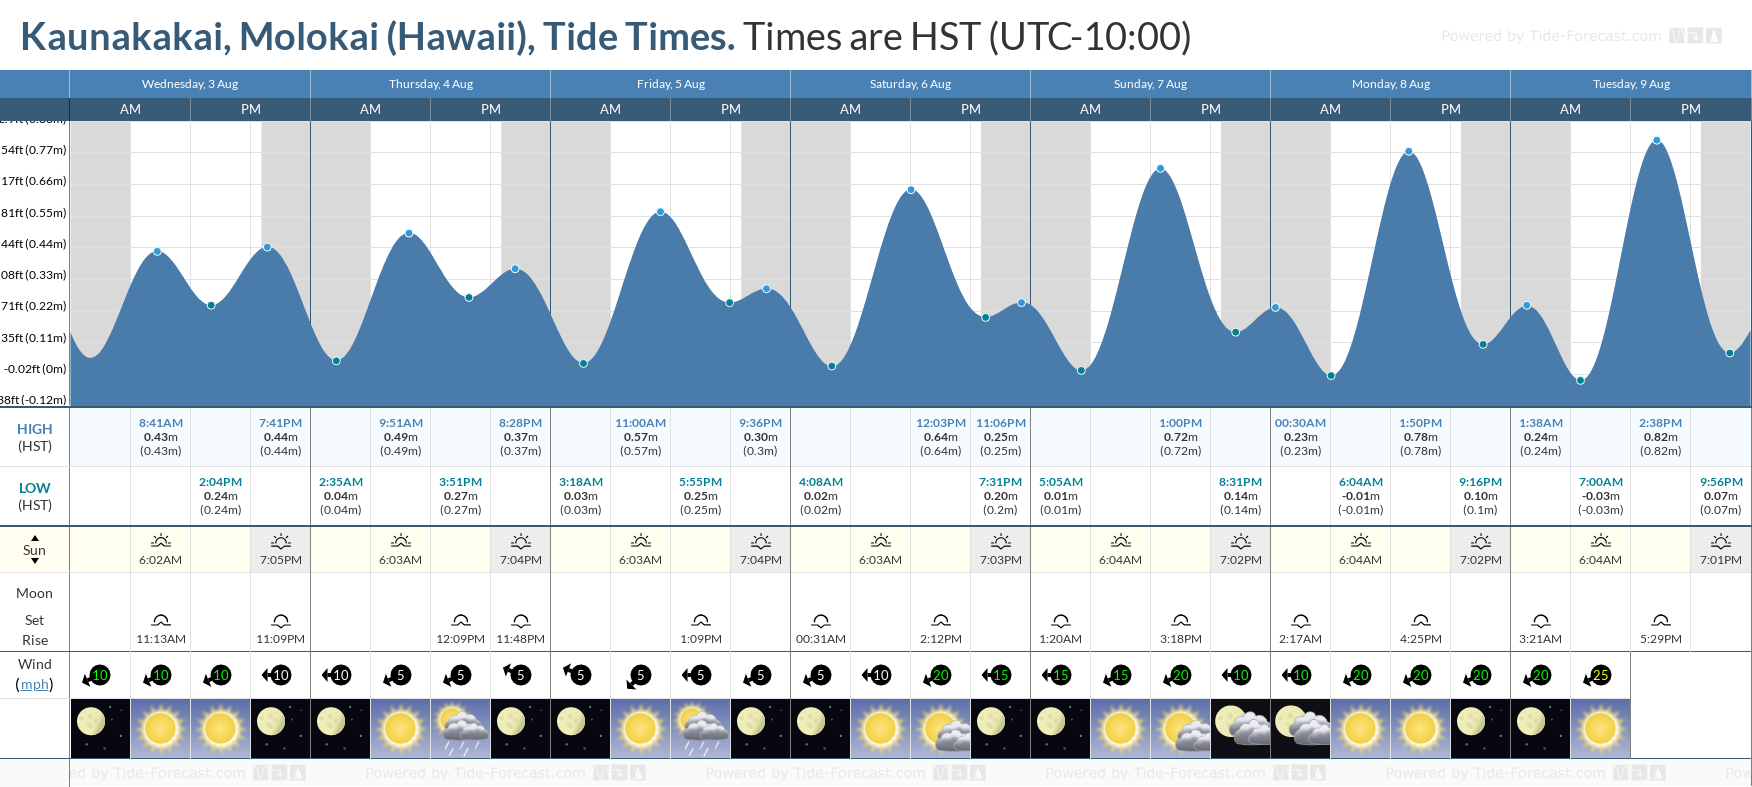 Kaunakakai, Molokai (Hawaii) Tide Chart including high and low tide tide times for the next 7 days